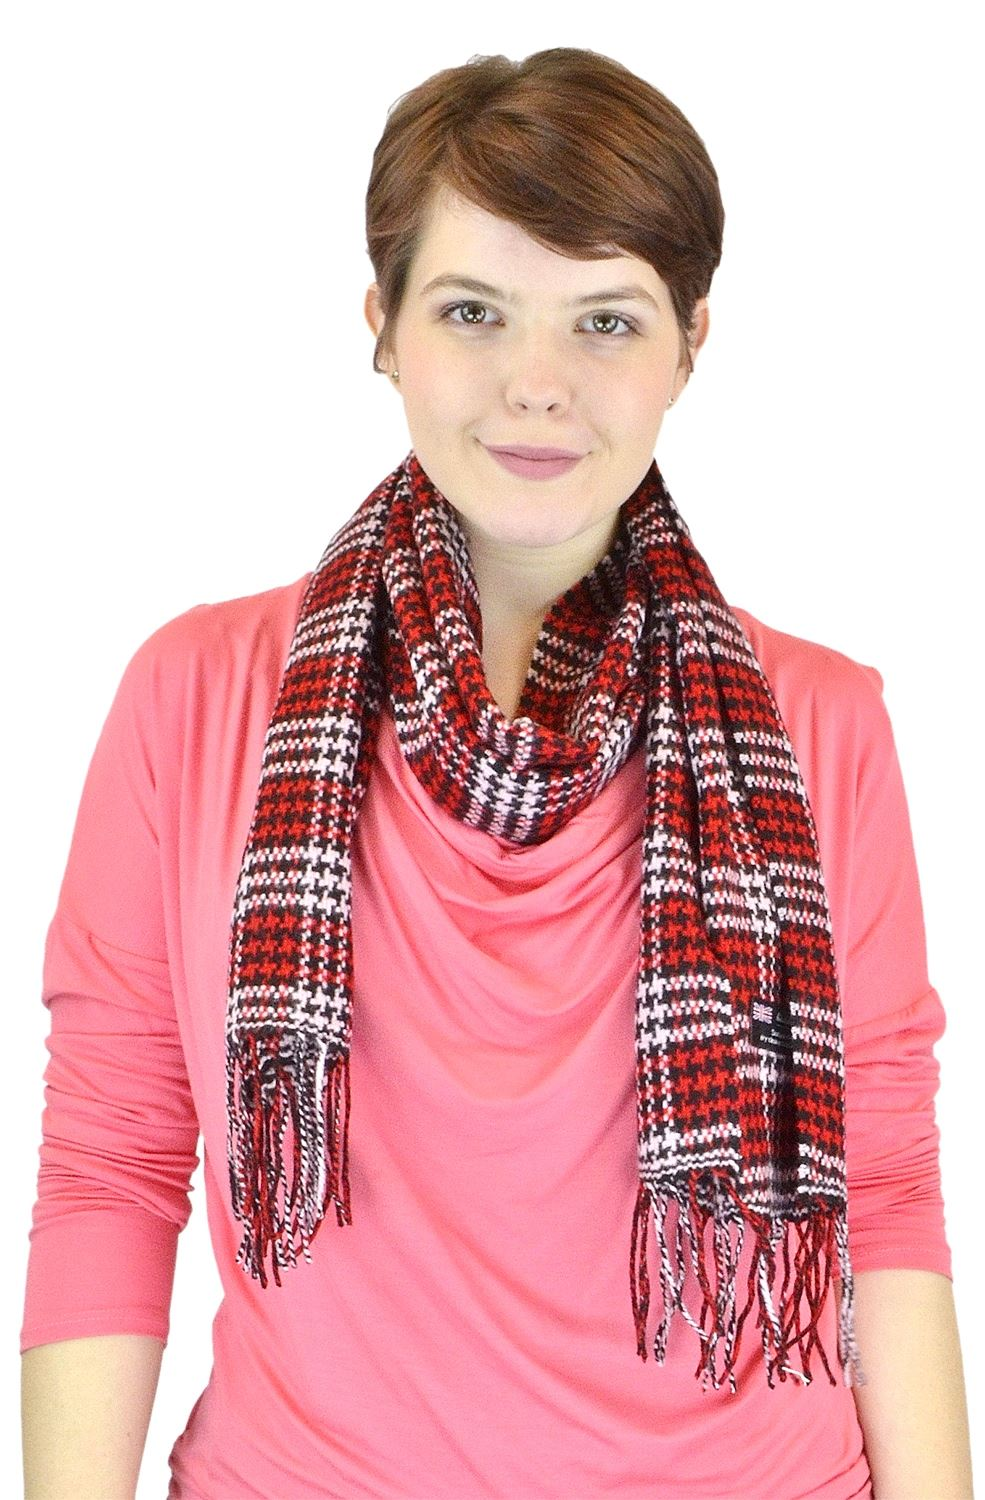 Belle Donne - Womens and Mens Cashmere Feel Winter Plaid Scarves Shawl Wrap - Woman, Man, Boys Girls Plaid Warm Winter Scarf Scarves - Red-Tone